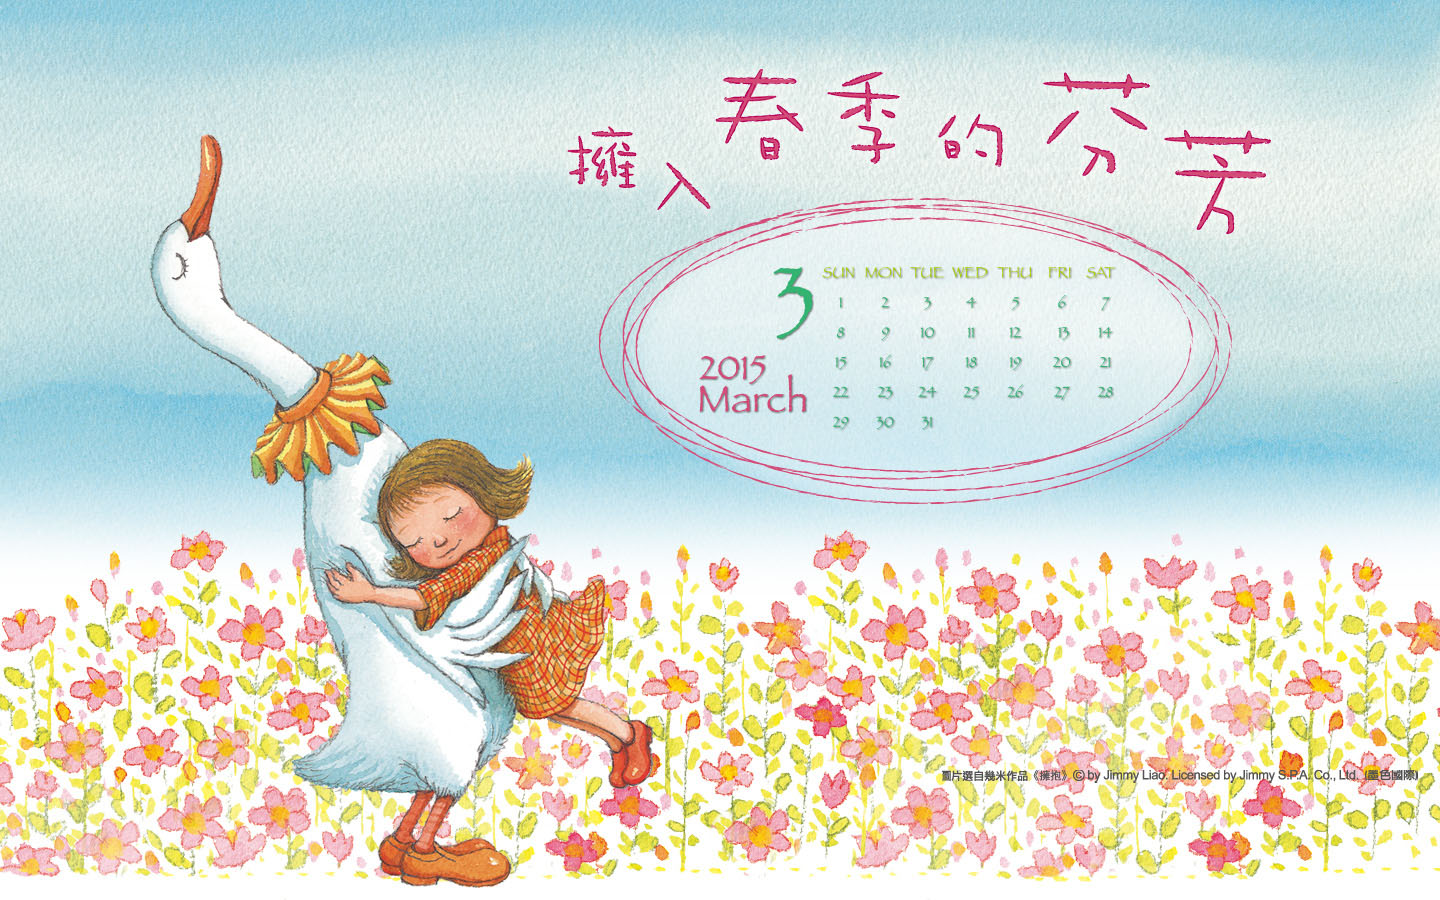 In January Calendar Wallpaper 51518